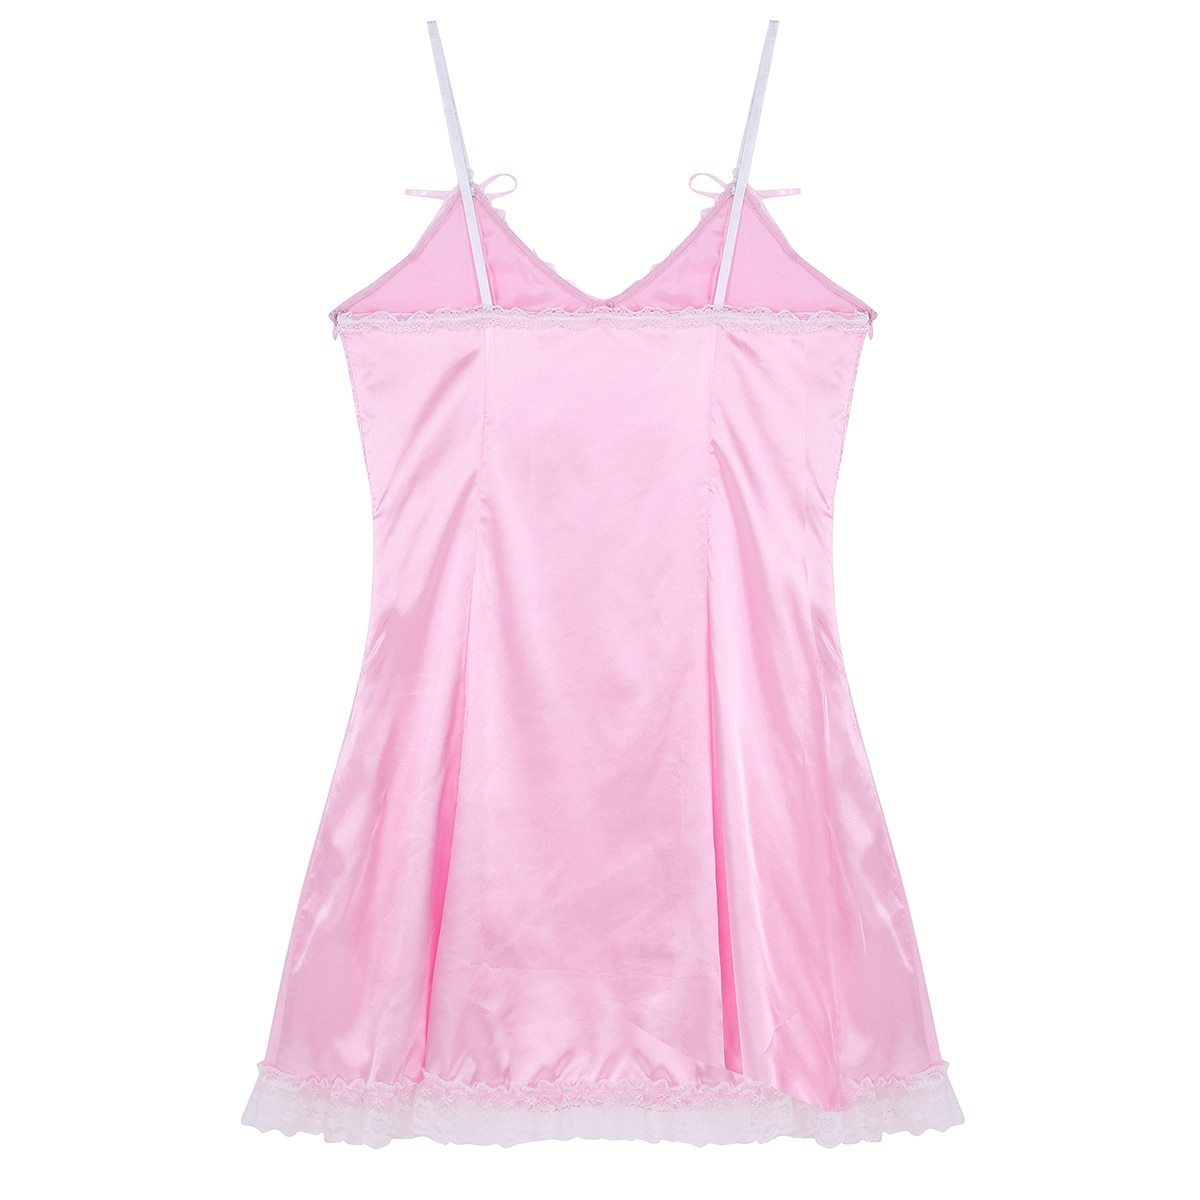 Satin Slip Dress Sissy Panty Shop